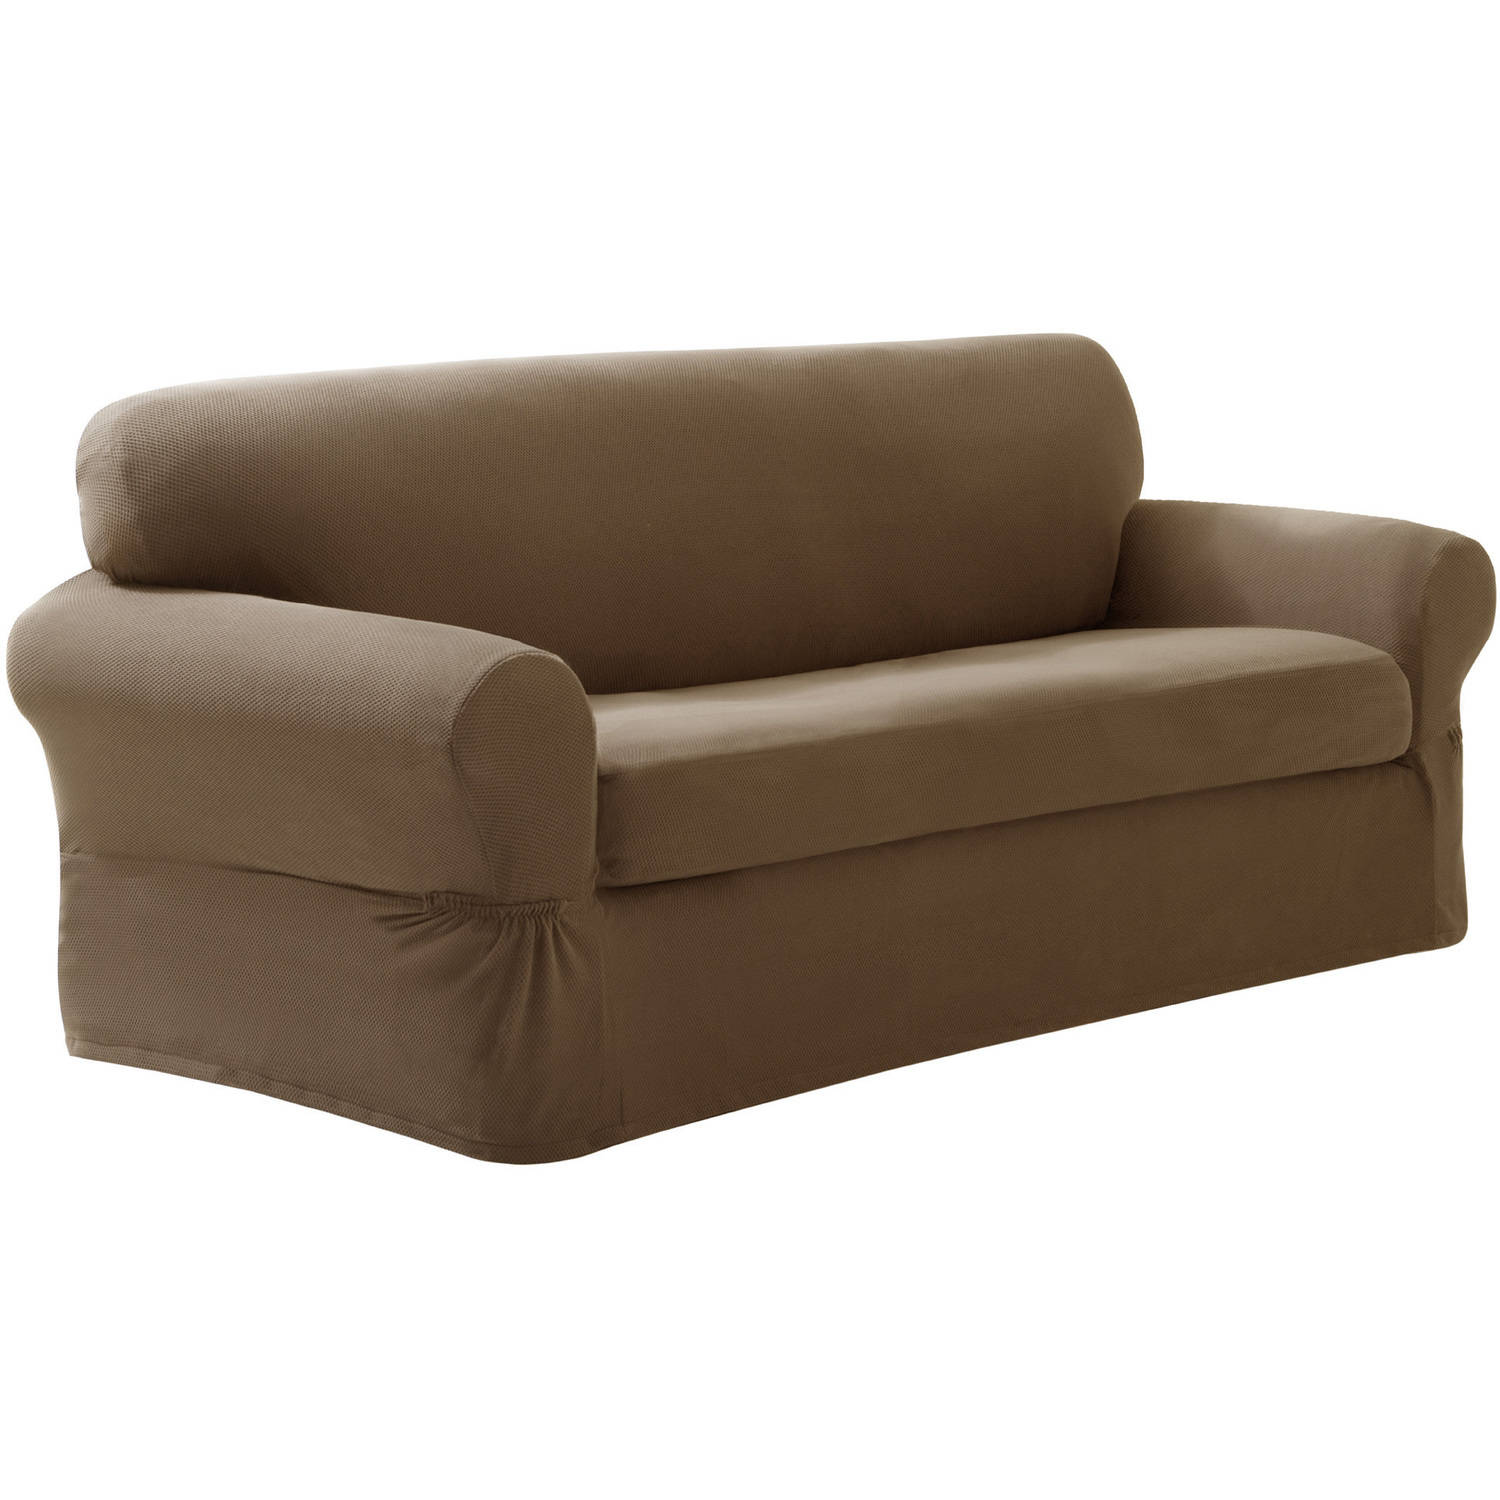 Sand Dune Stretch Pixel Sofa Slipcover (2 Piece) - Maytex